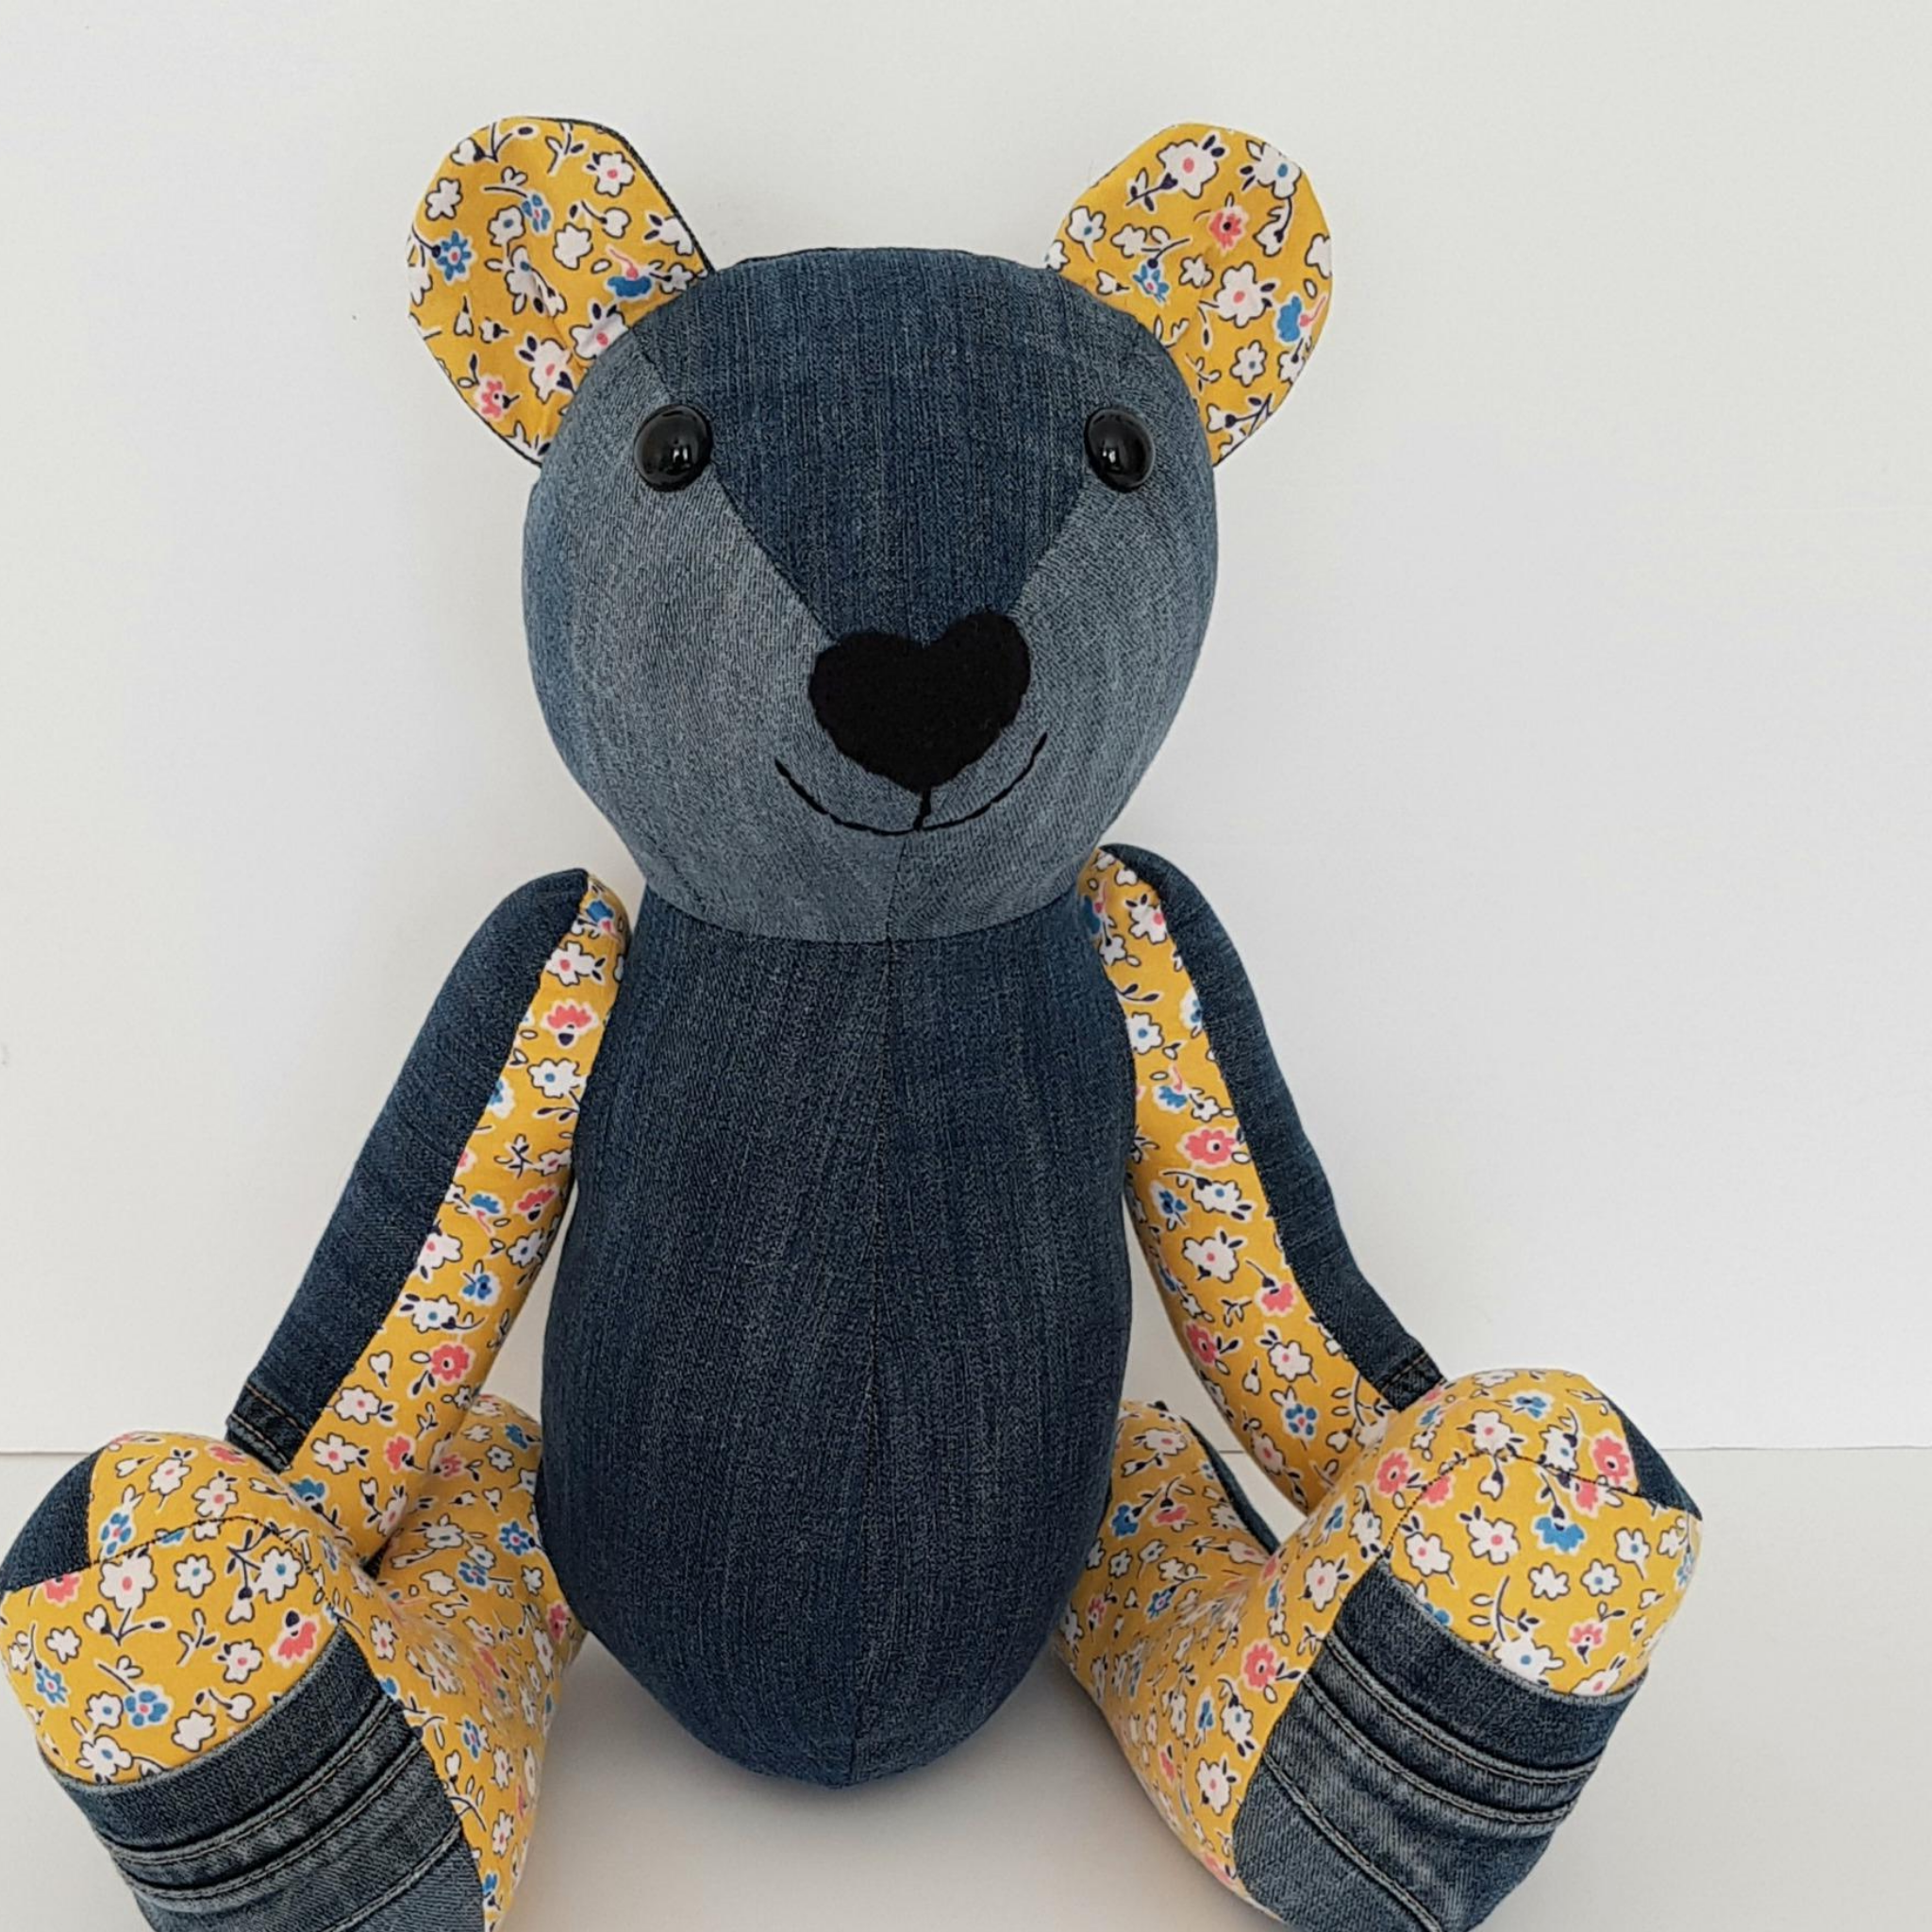 sewing pattern photo of charlie bear